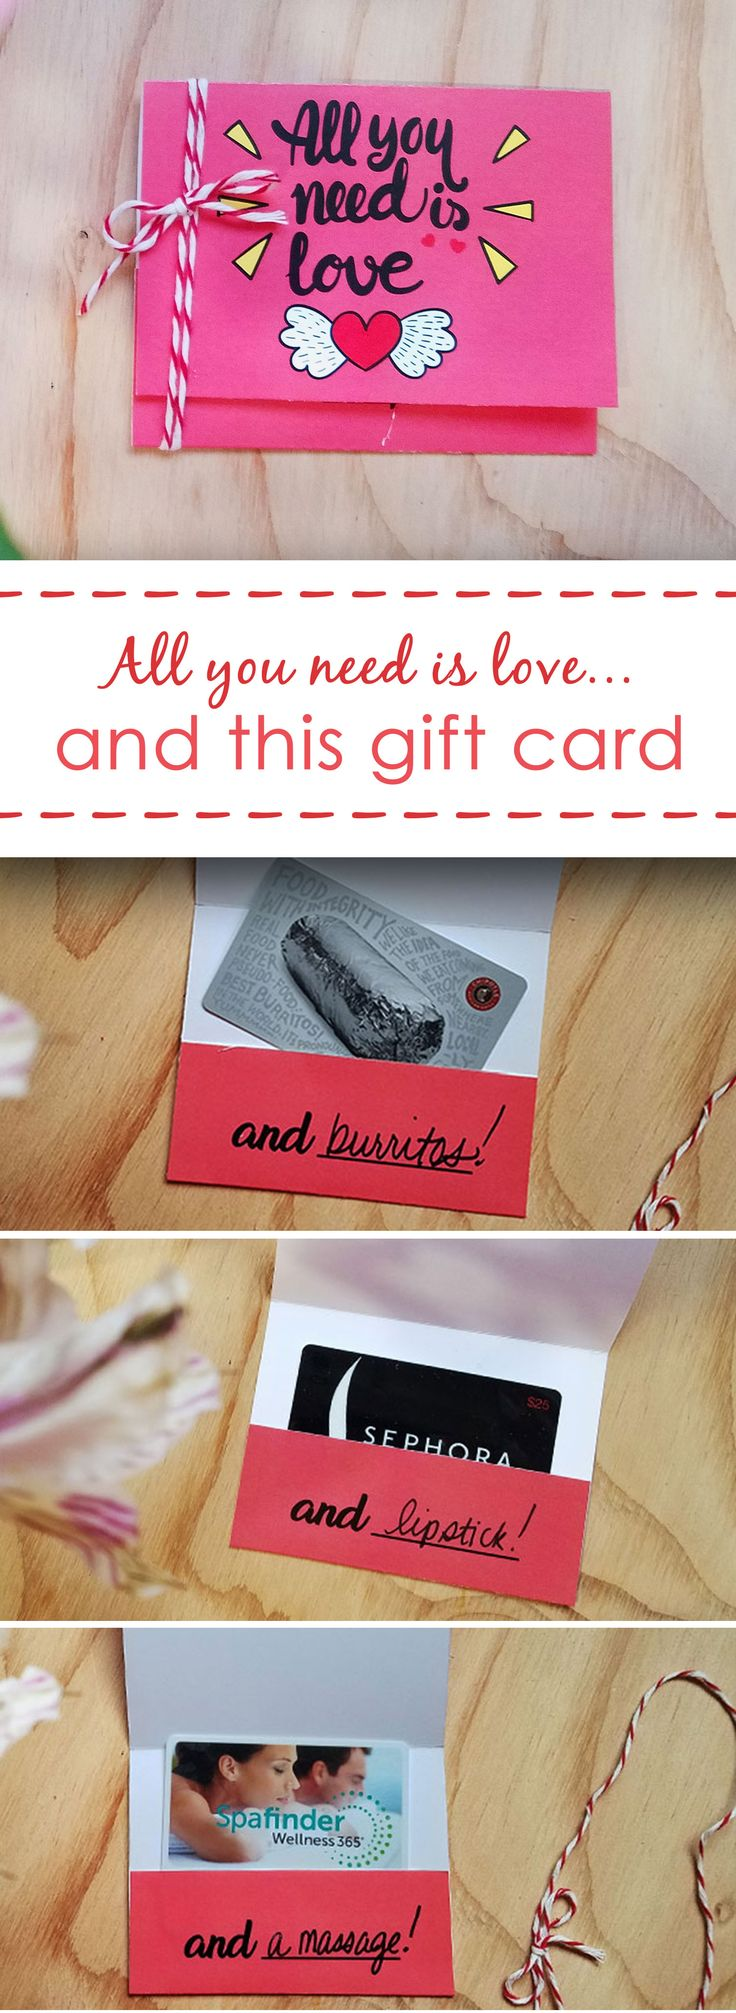 207 Best Free Printables For Gifts Images On Pinterest Free